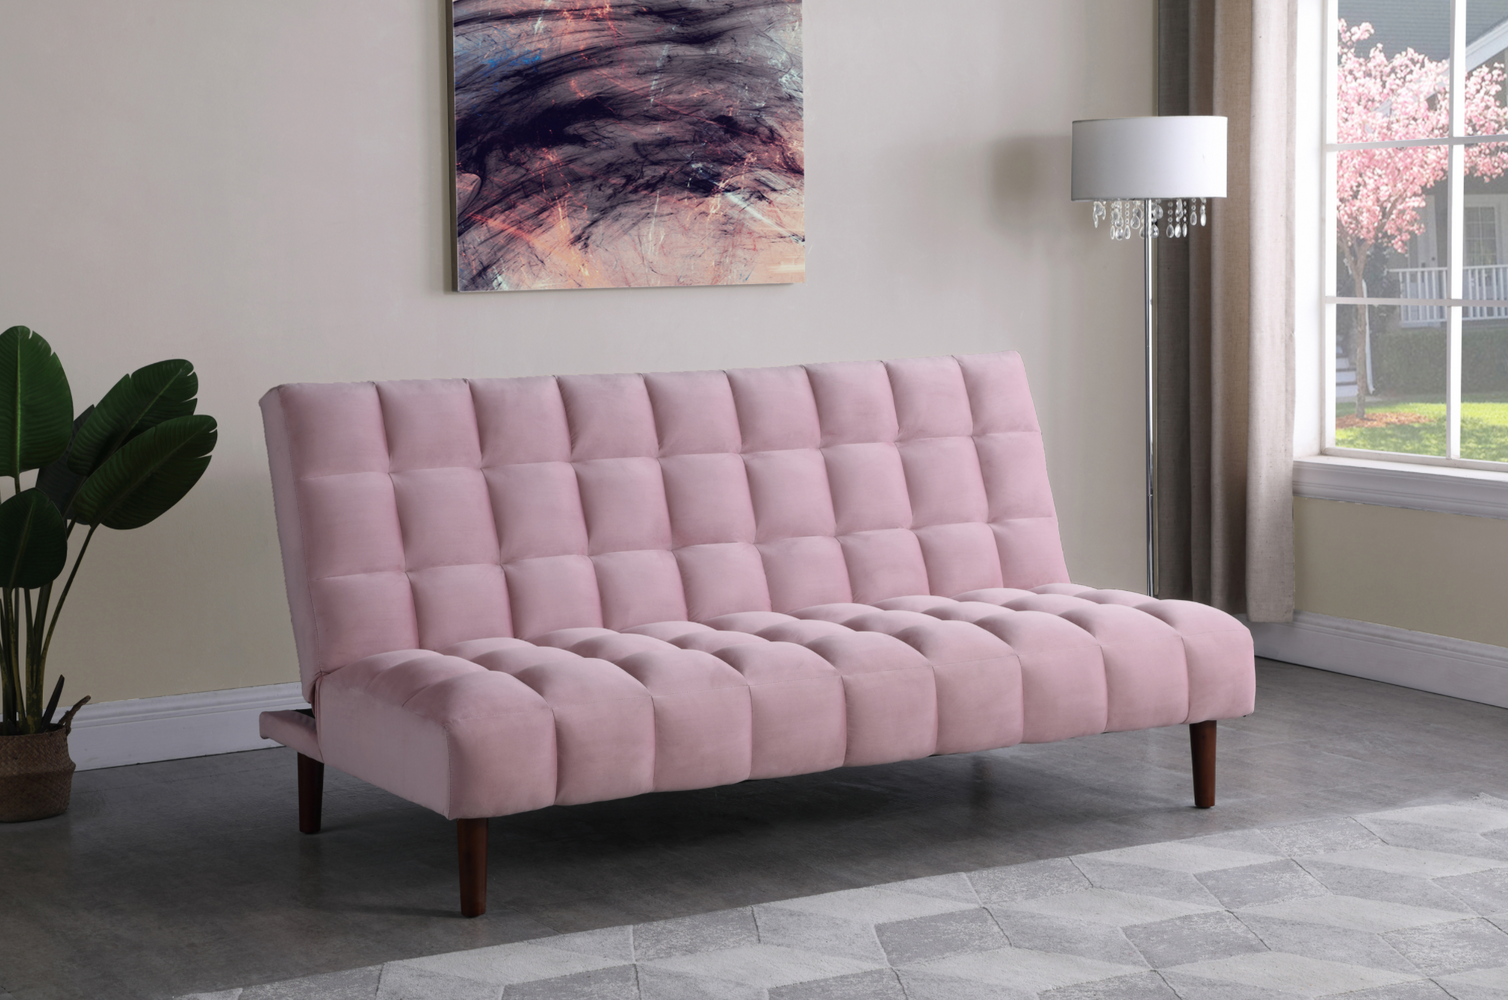 Cullen Biscuit Tufted Upholstered Sofa Bed